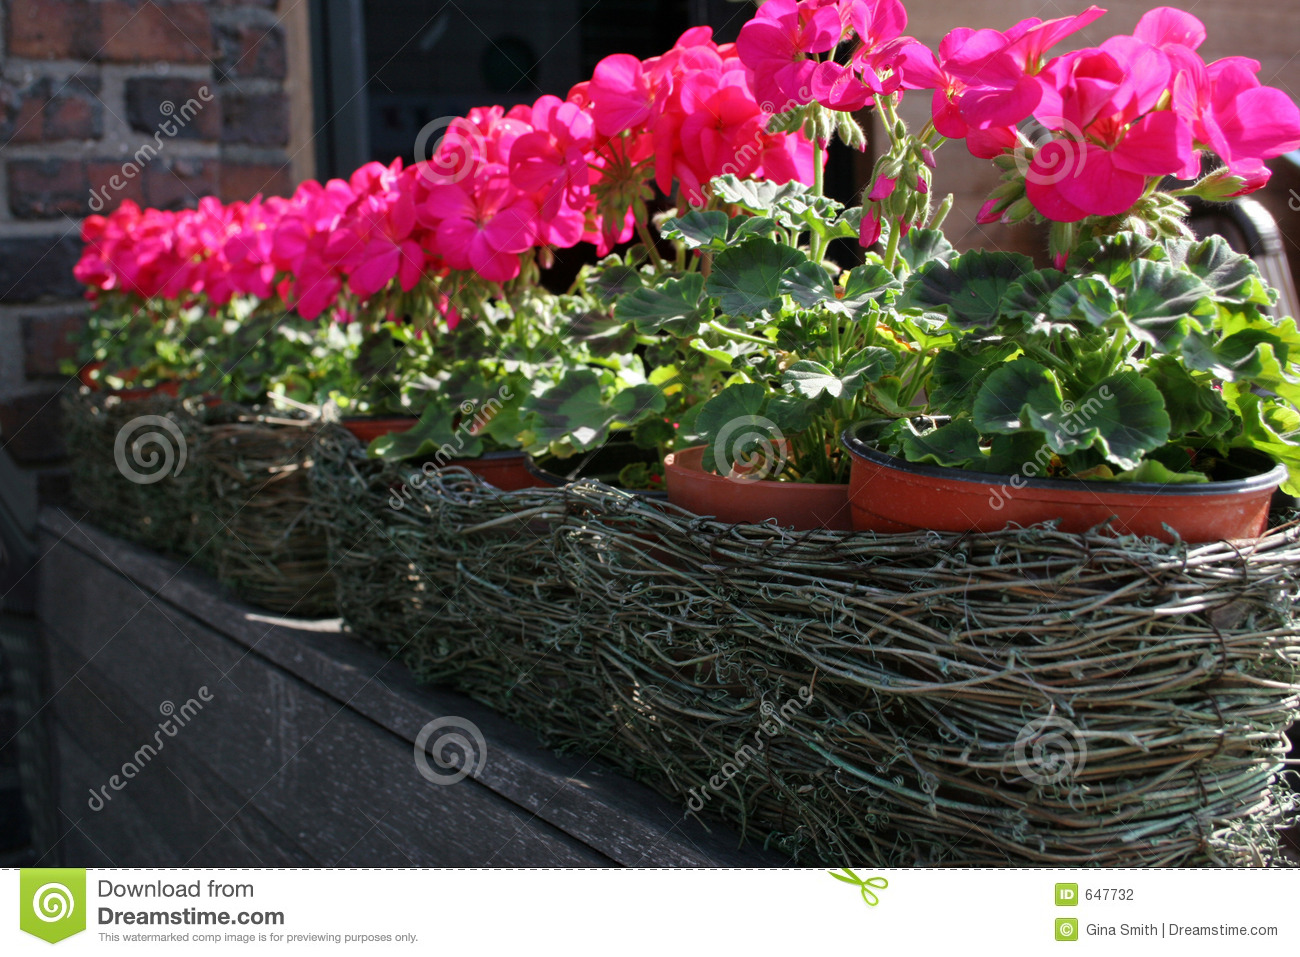 Great images of image of flower pots best home design ideas and pink flower pots stock graphy image mightylinksfo